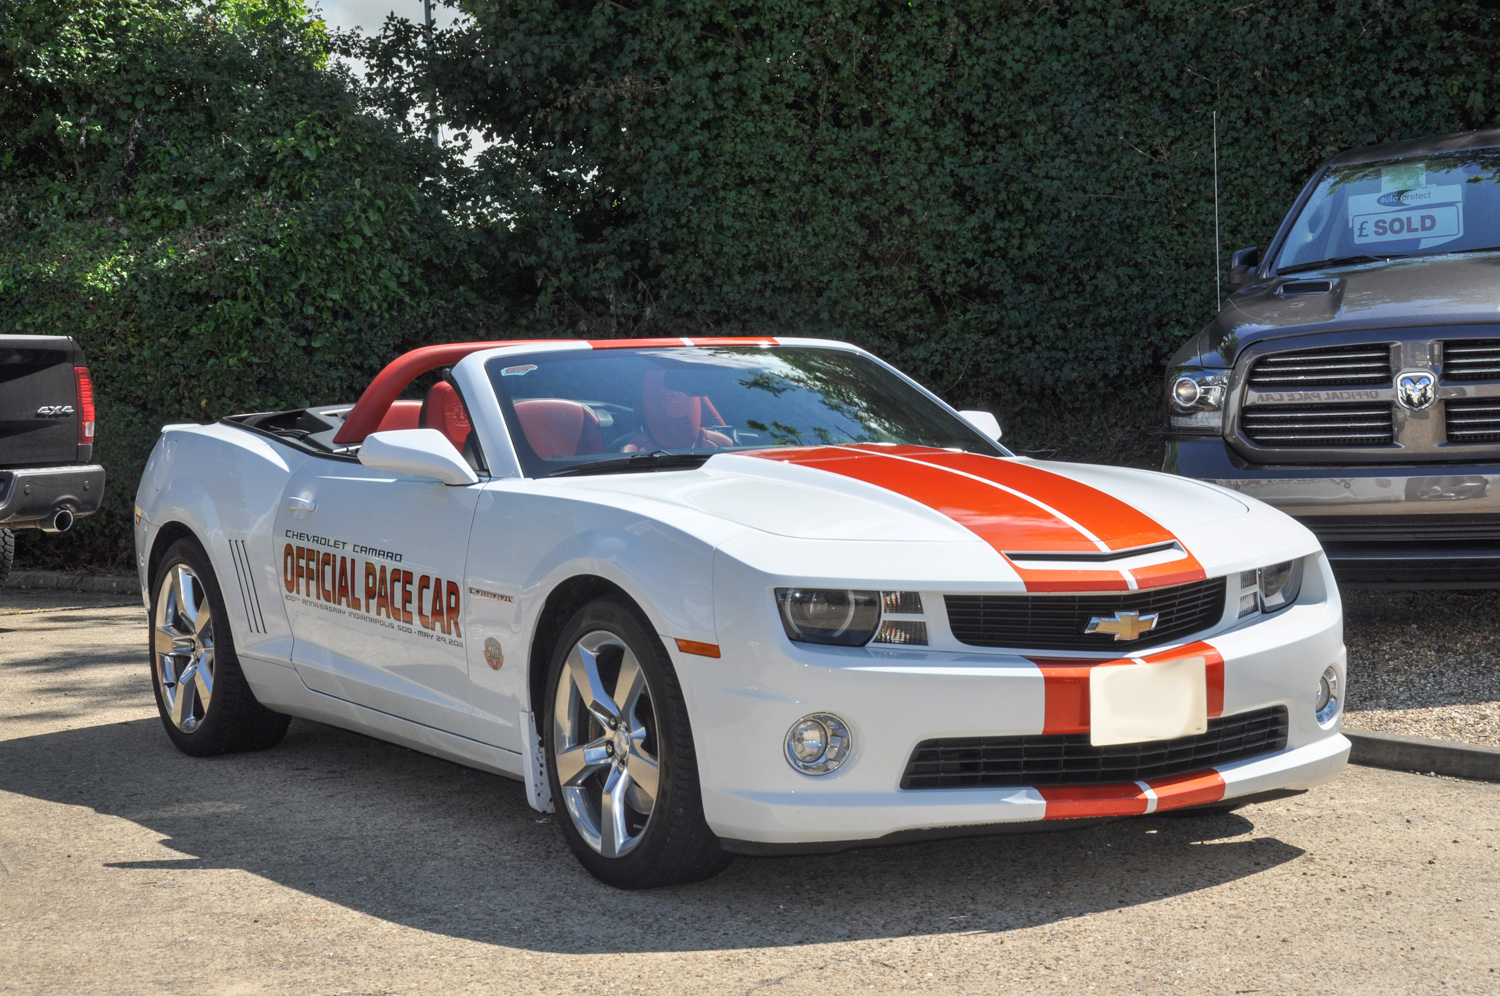 chevrolet camaro pace car convertible indy 500 limited edition 2011 david boatwright. Black Bedroom Furniture Sets. Home Design Ideas